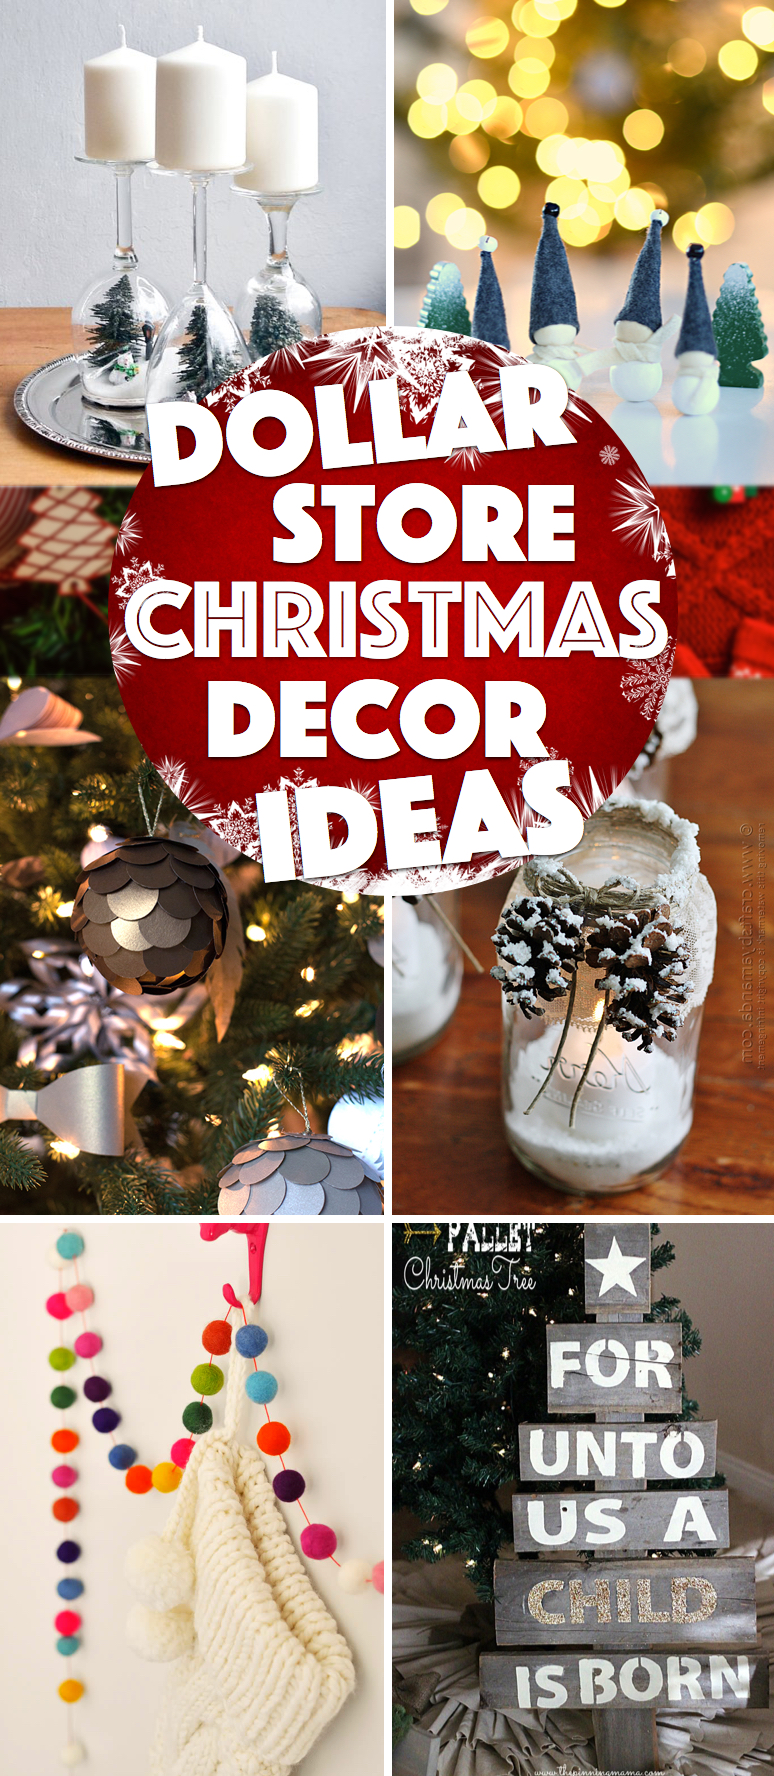 39 Oh So Gorgeous Dollar Store DIY Christmas Decor Ideas to Make You ...